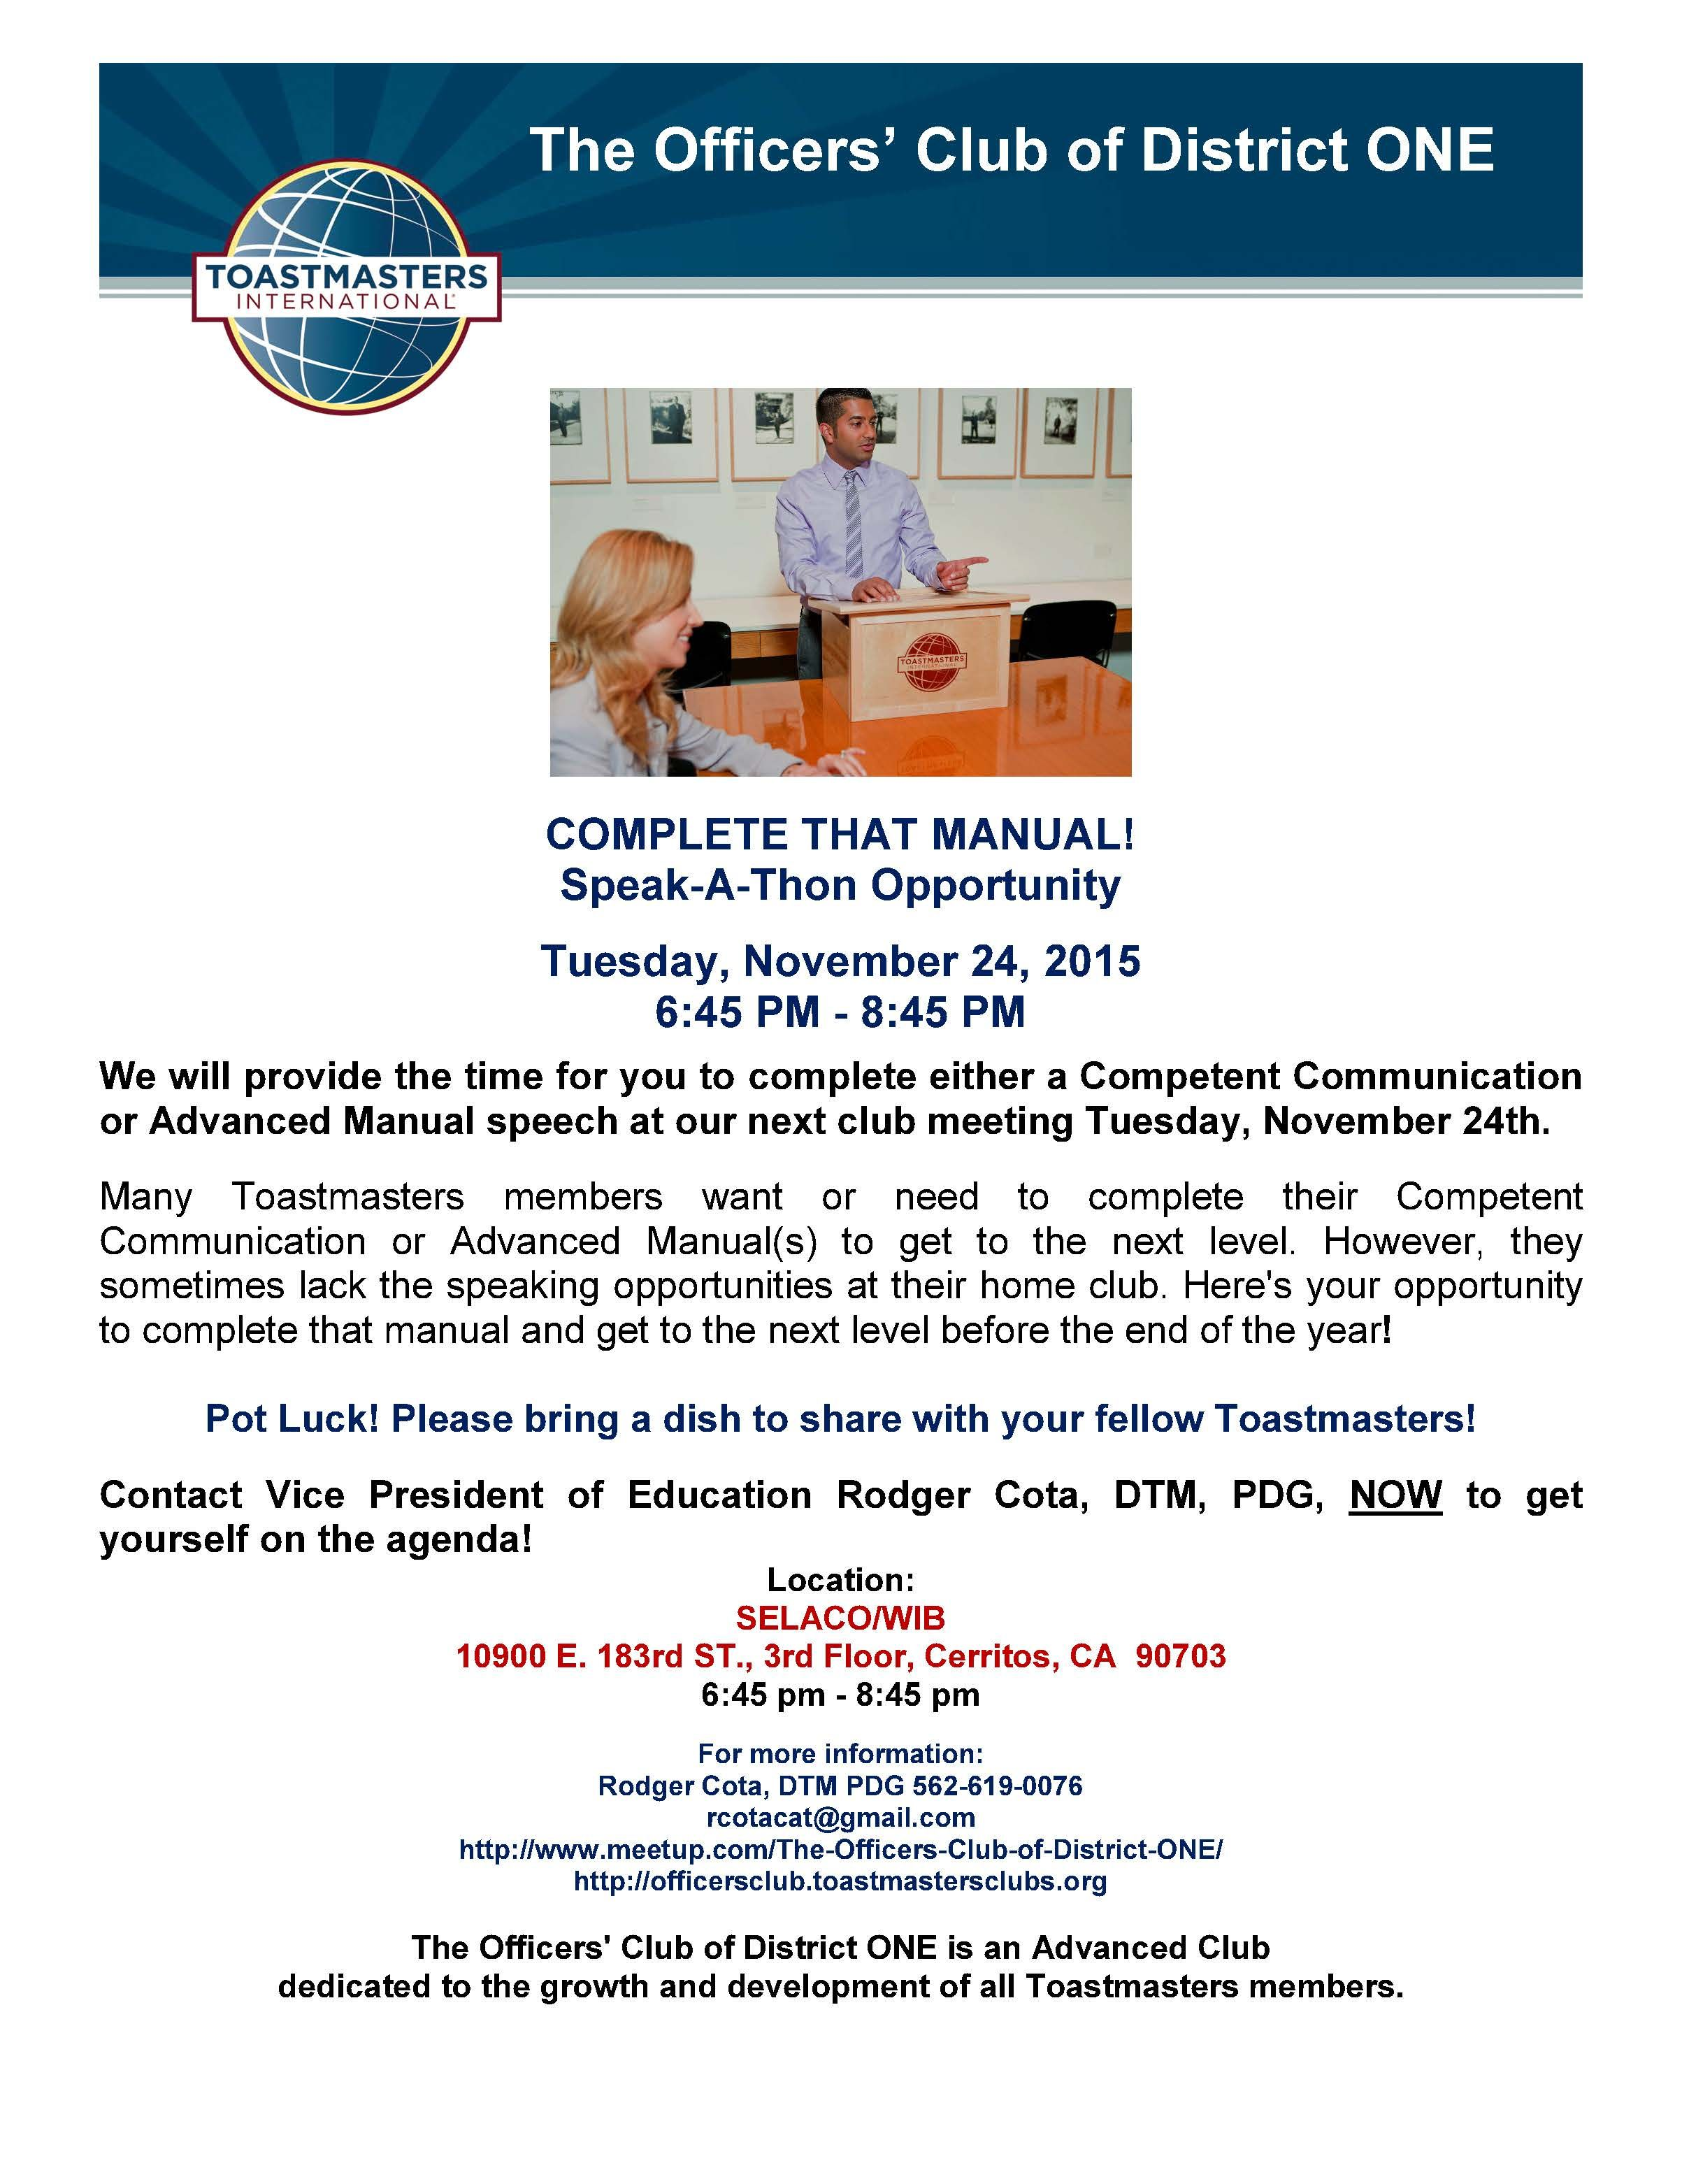 EVENT: The Officers' Club of District ONE's 'Complete That Manual!' Meeting SPONSORING CLUB: The Officers' Club of District ONE  WHEN: Tuesday, November 24th, 6:45 PM - 8:45 PM  WHAT: Pot Luck! Please bring a dish to share with your fellow Toastmasters!  WHERE: SELACO/WIB 10900 E 183rd St, 3rd Floor, Cerritos CA 90703  CONTACT: Vice President Education Rodger Cota, DTM, PDG at rcotacat@gmail.com or (562) 619-0076 NOW to get yourself on the agenda!